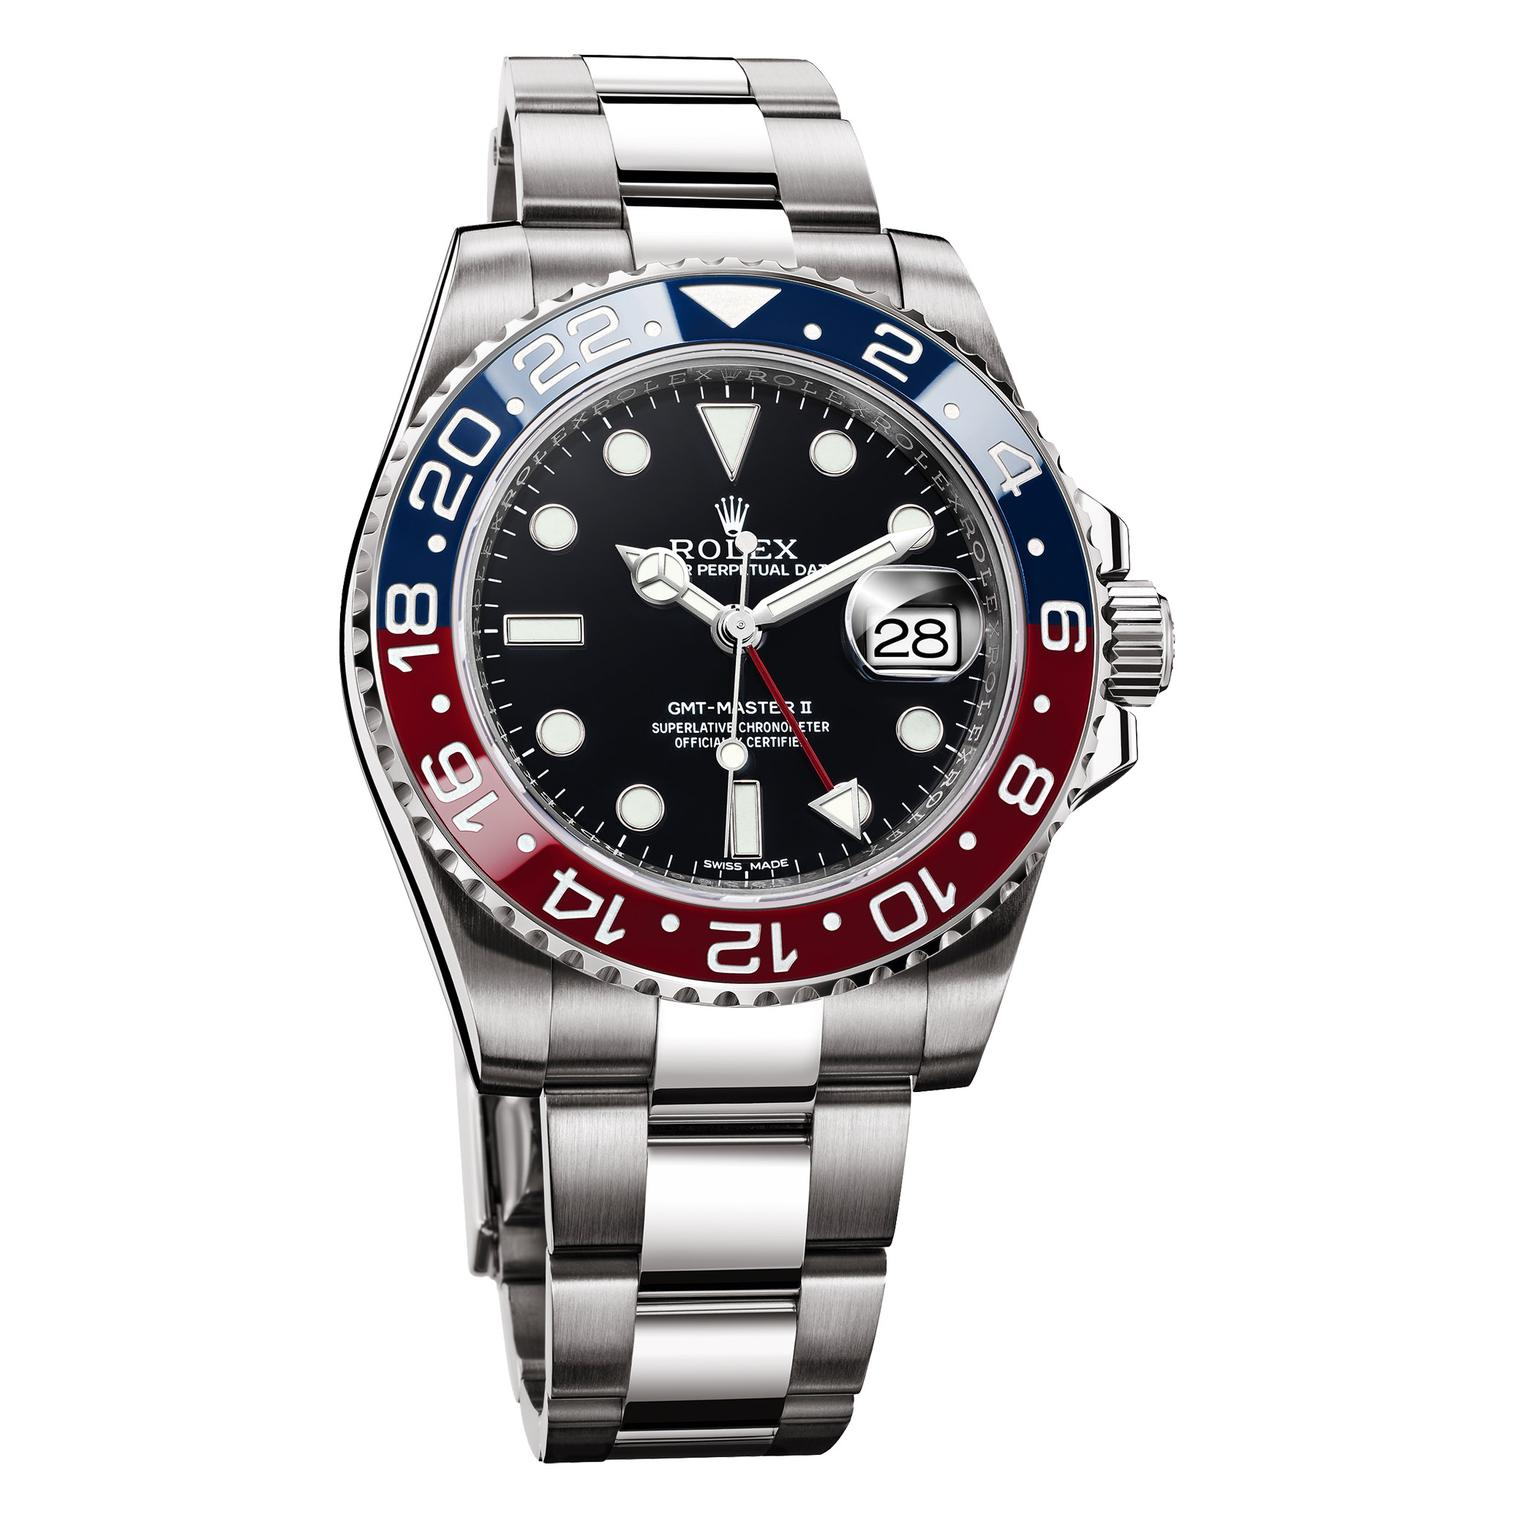 23f05e91fa8 ... Oyster Perpetual Gmt-Master Ii With A Cerachrom 'Pepsi' Bezel. Rolex GMT -Master Pepsi watch. Rolex Pepsi Zoom